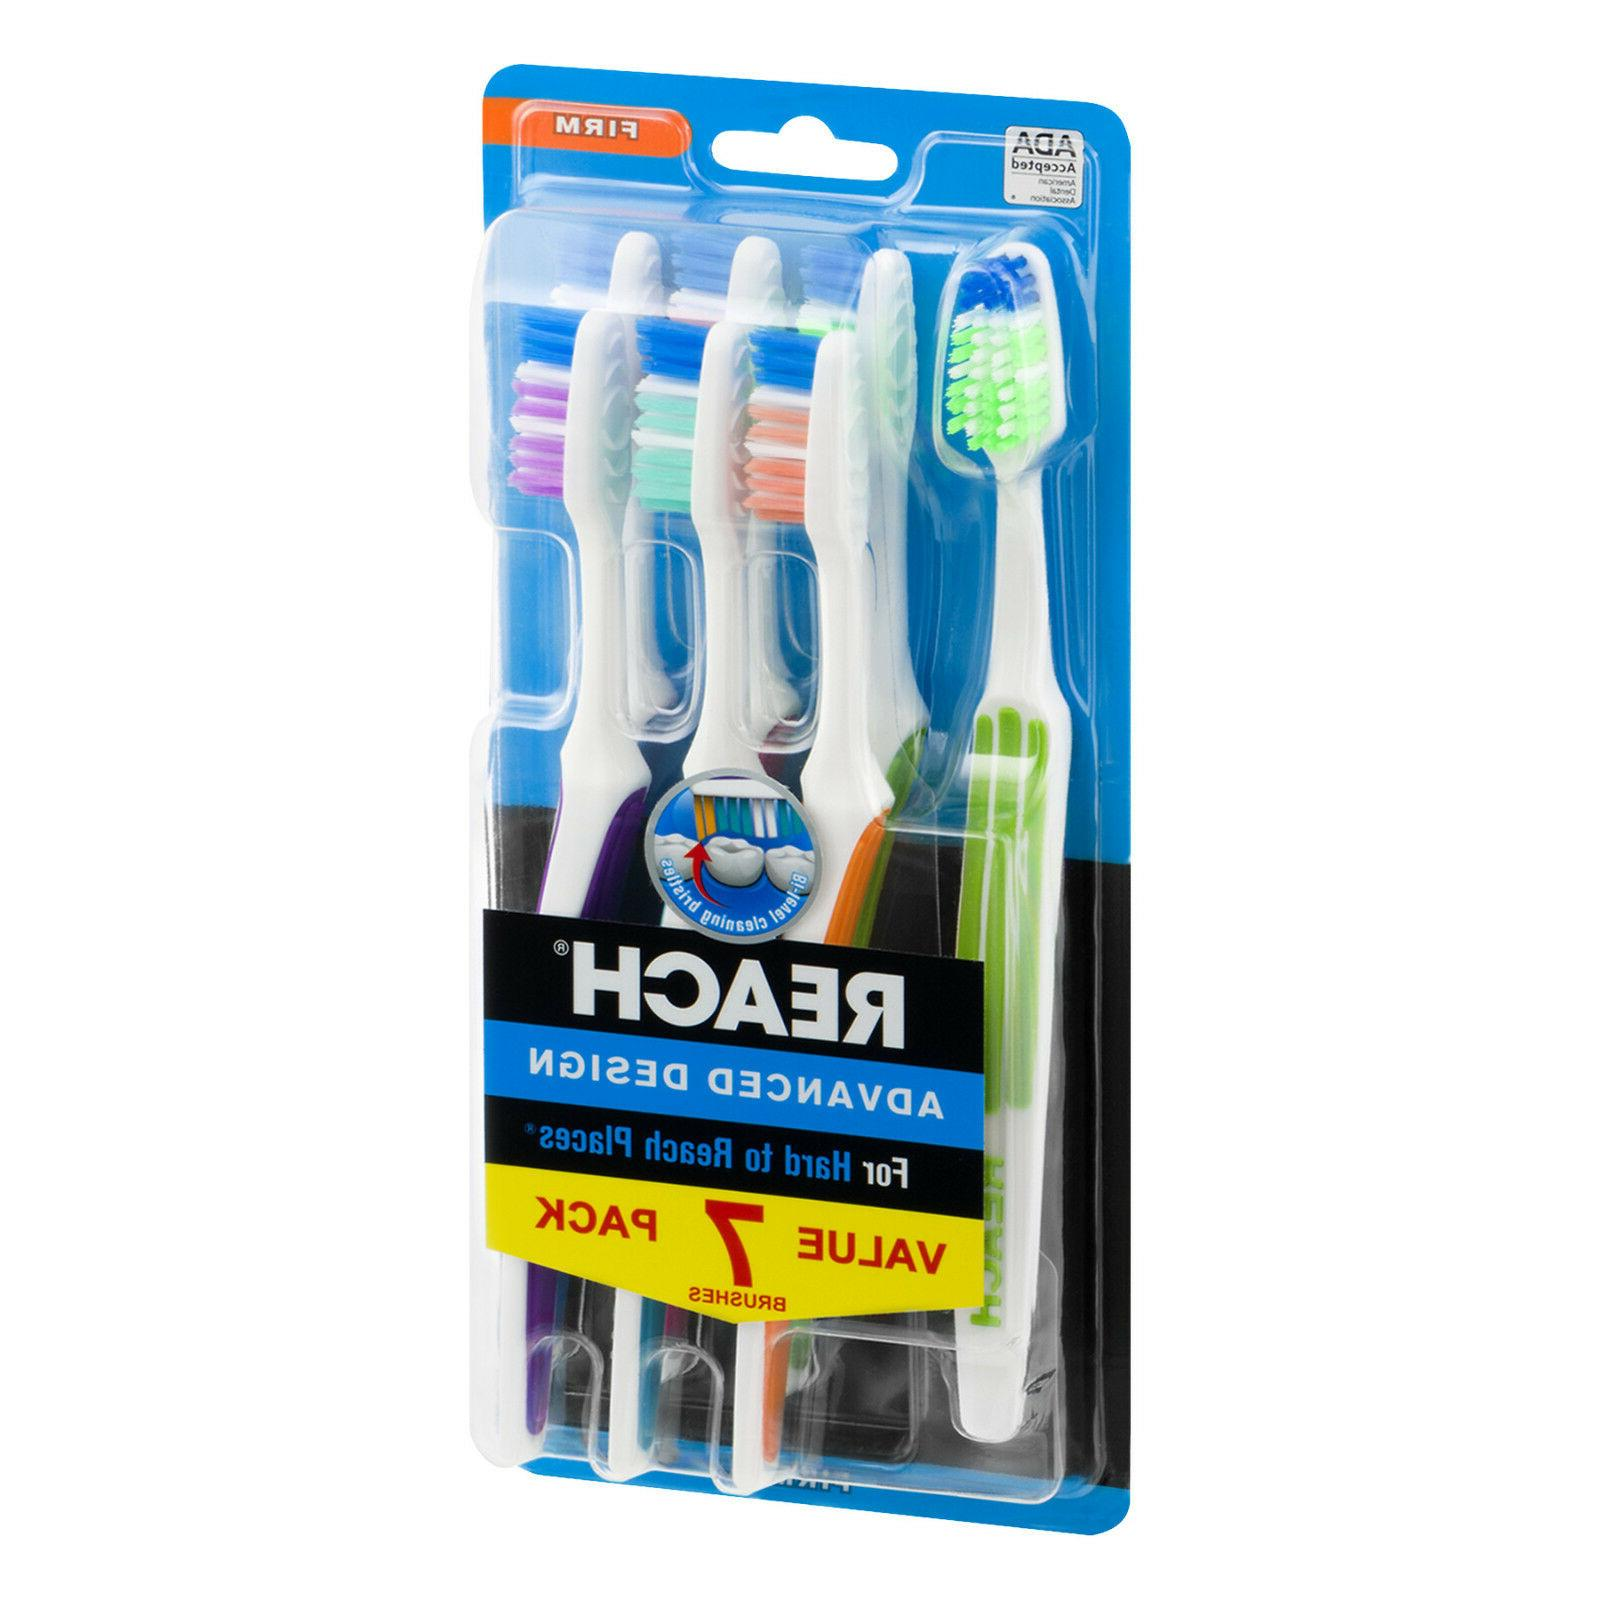 REACH 7-PACK ADVANCED DESIGN TOOTHBRUSHES FIRM BRISTLES for